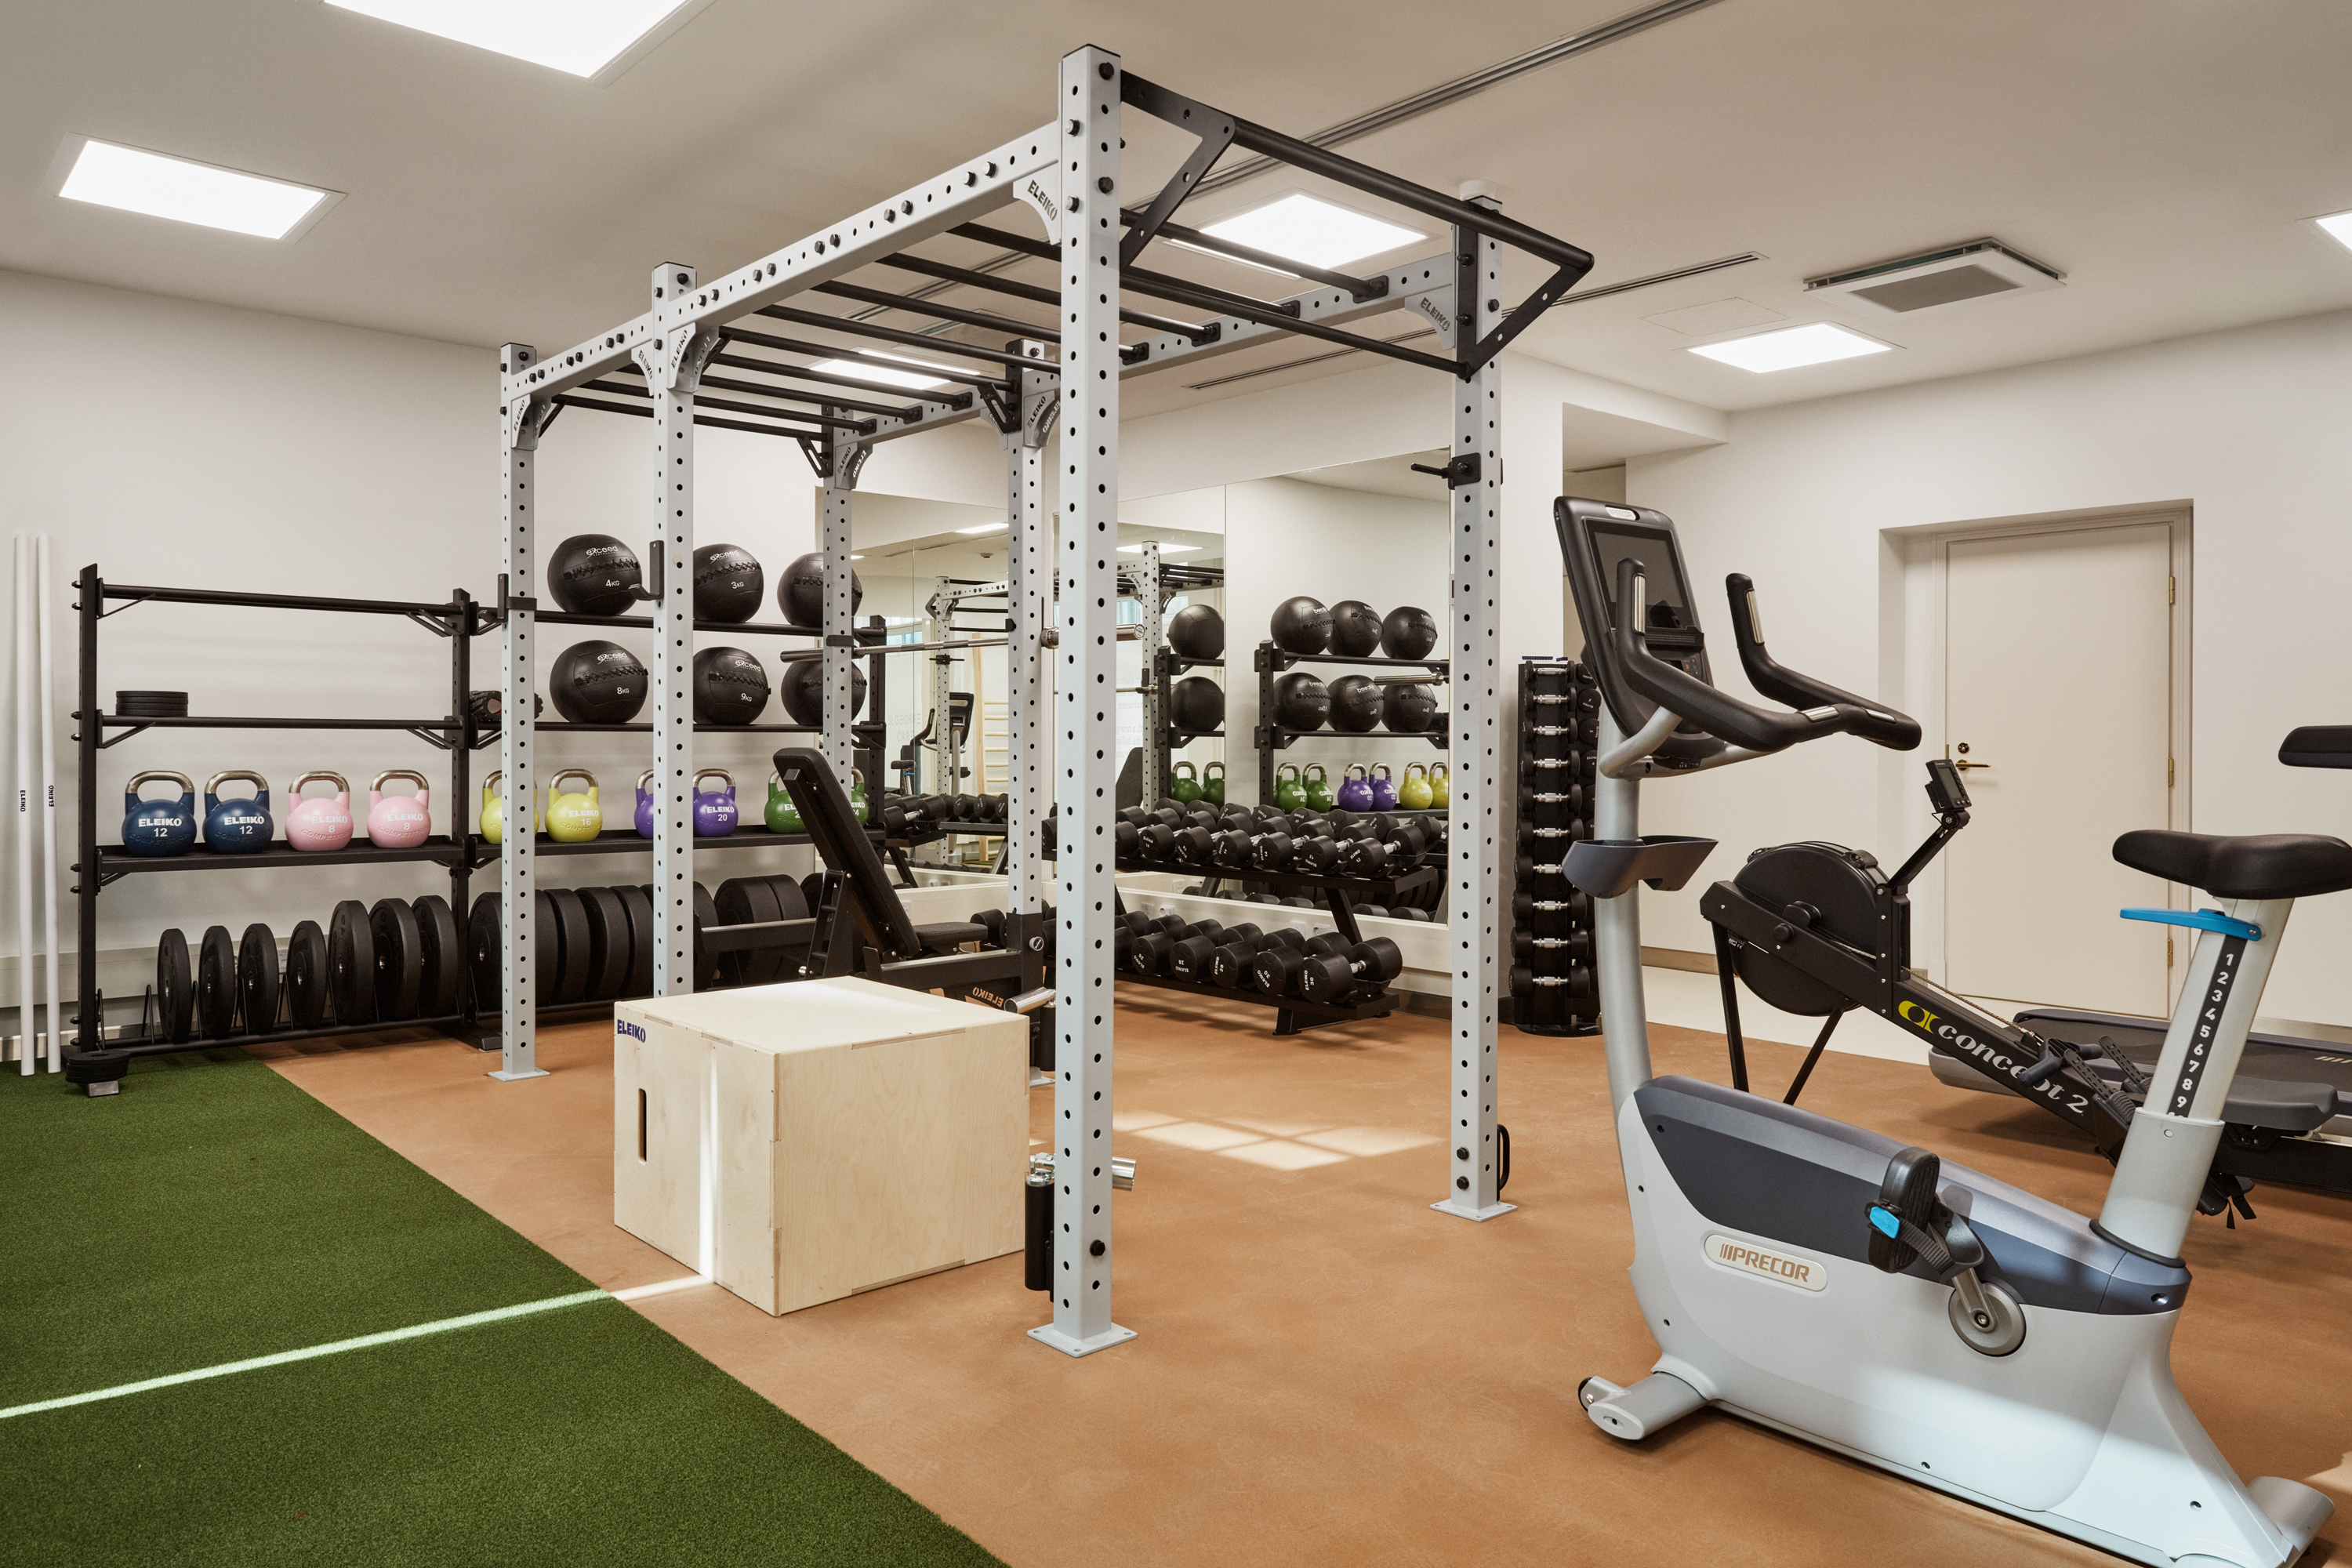 St.-George-Care-Playground-gym-2000px.jpg?mtime=20180501220138#asset:4368